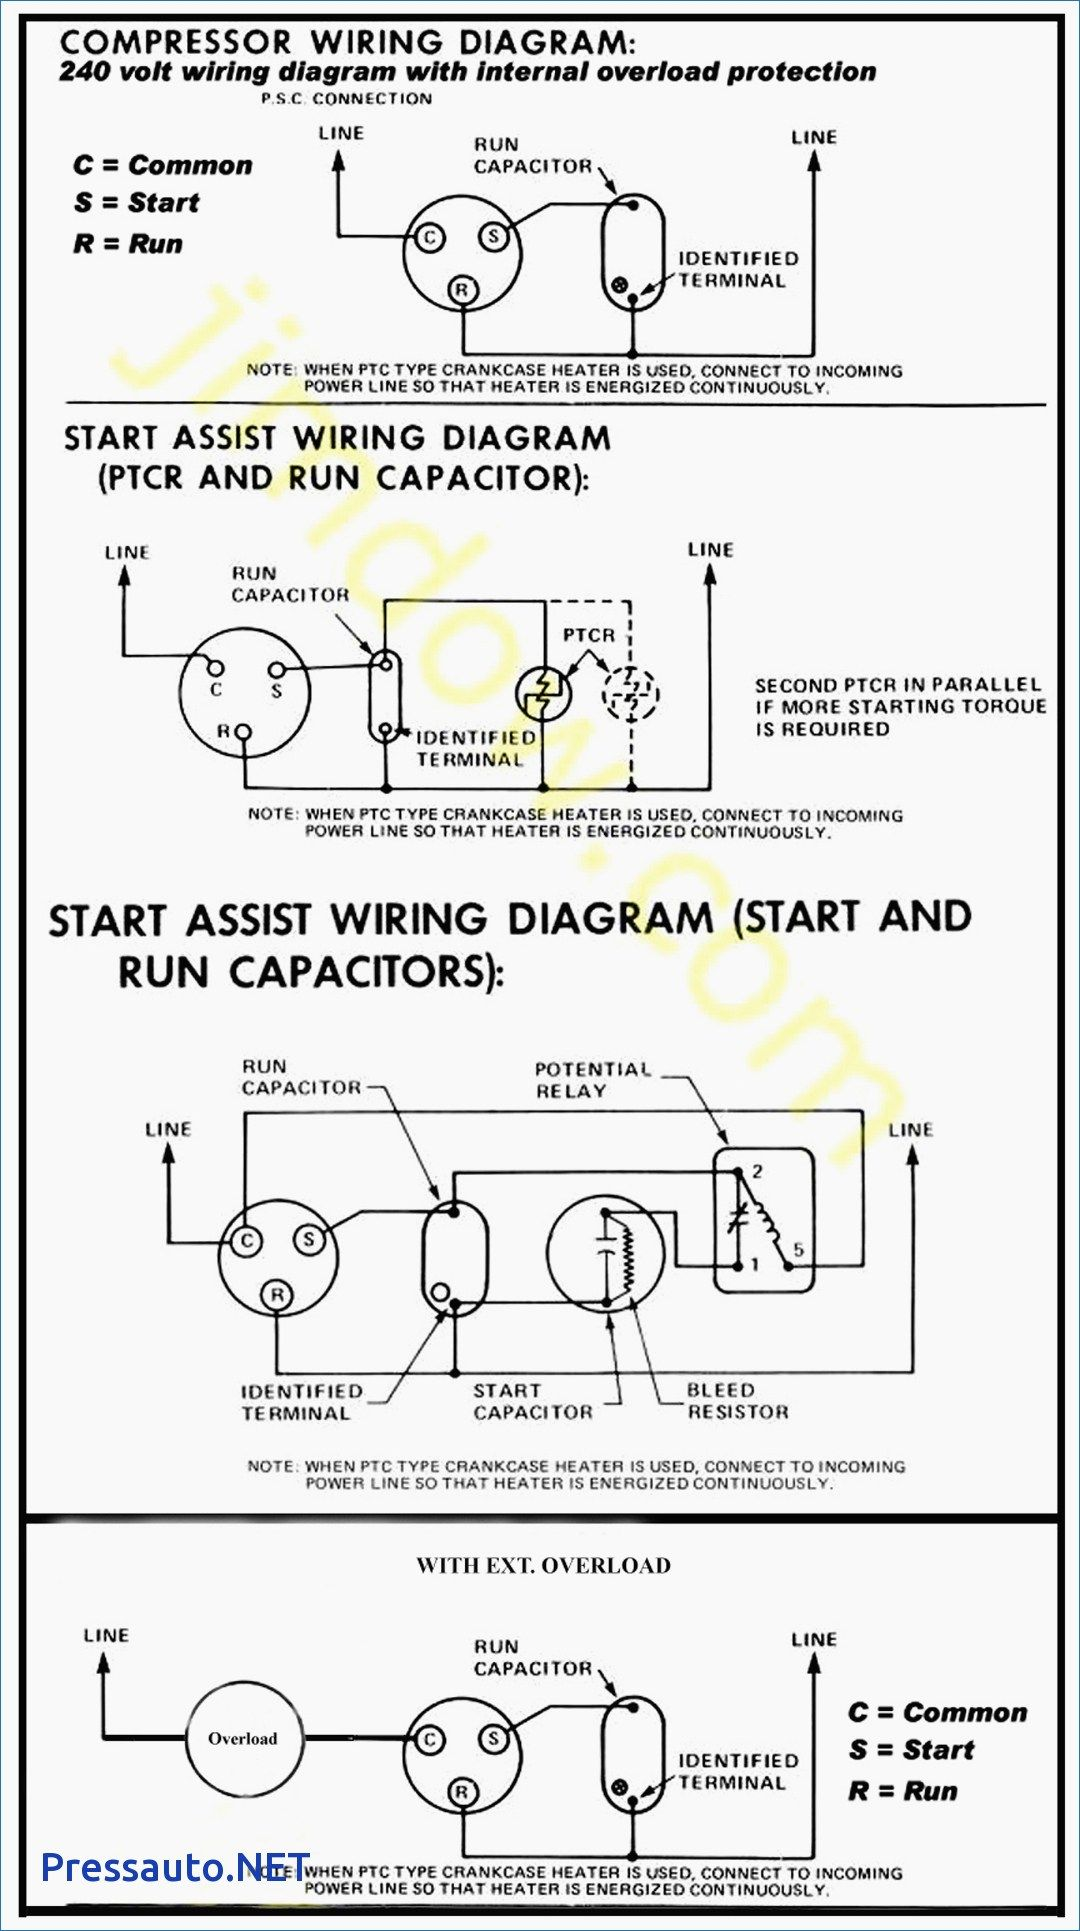 115v Single Phase Compressor Wiring Diagram air compressor ... on ground and neutral, electric motor, junction box, power cord, knob-and-tube wiring, three-phase electric power, wiring diagram, extension cord, distribution board, circuit breaker, electrical conduit, electric power distribution, alternating current, earthing system, national electrical code, electrical engineering, power cable,